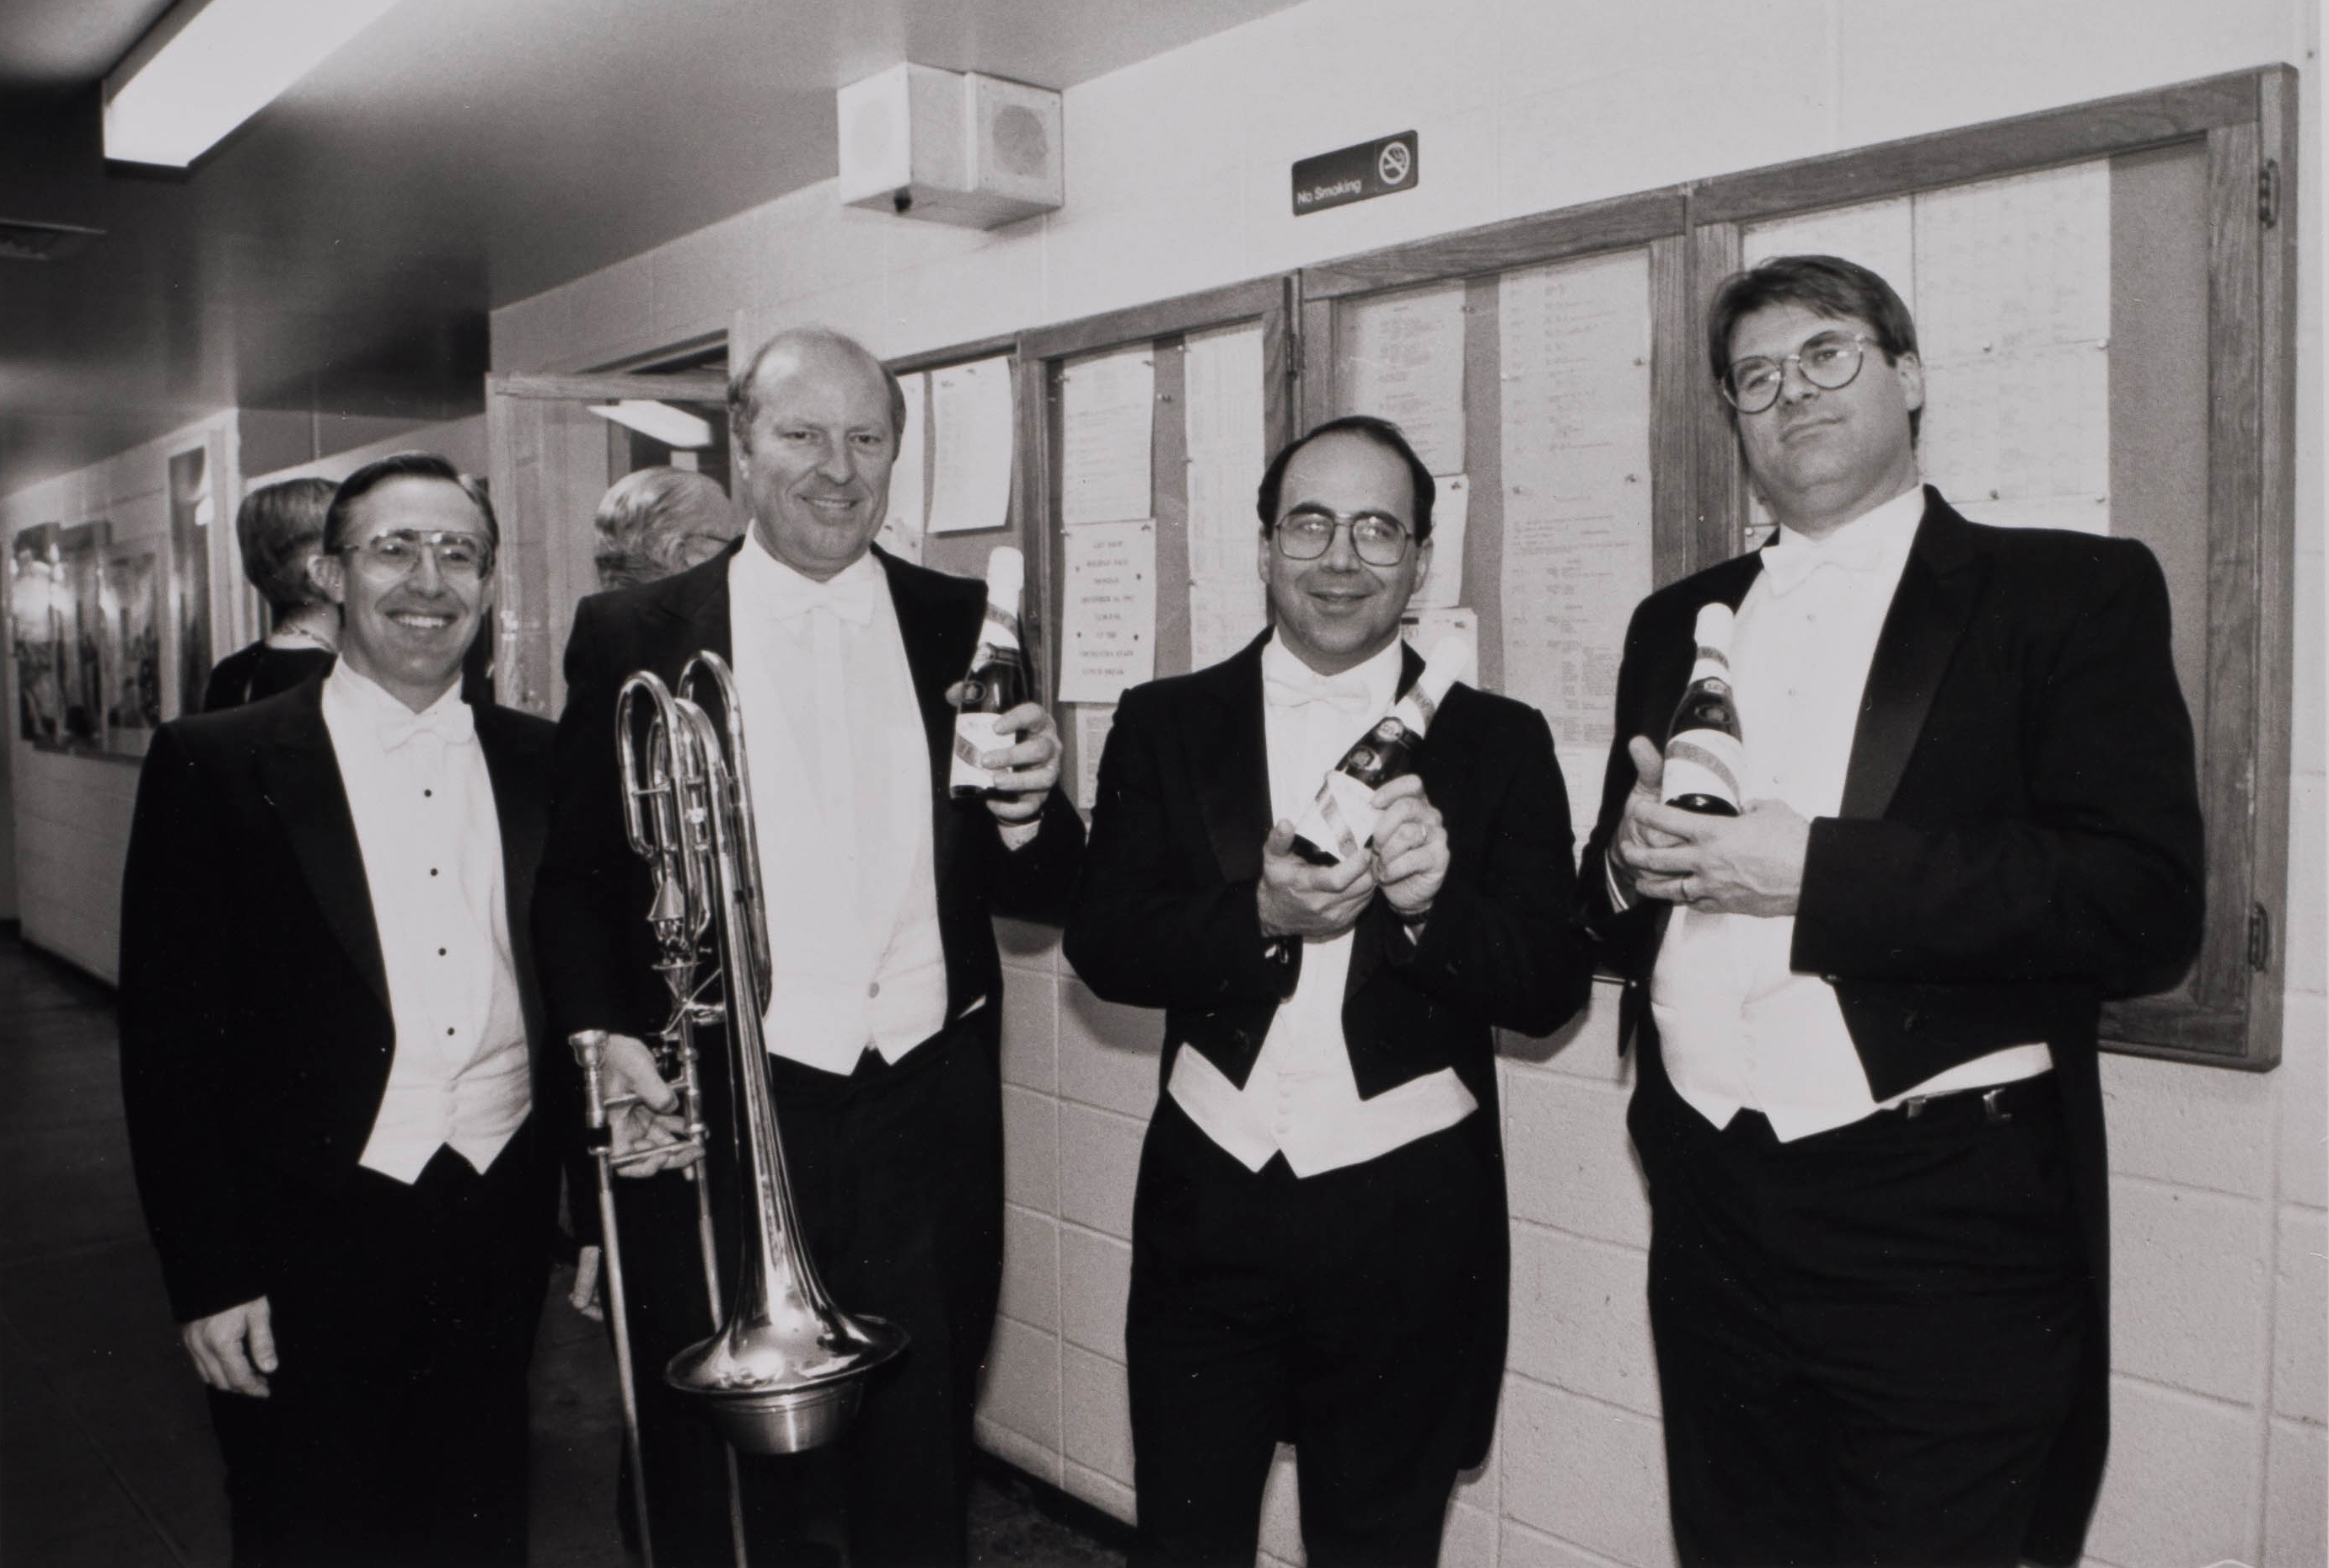 Trombone section, 1992